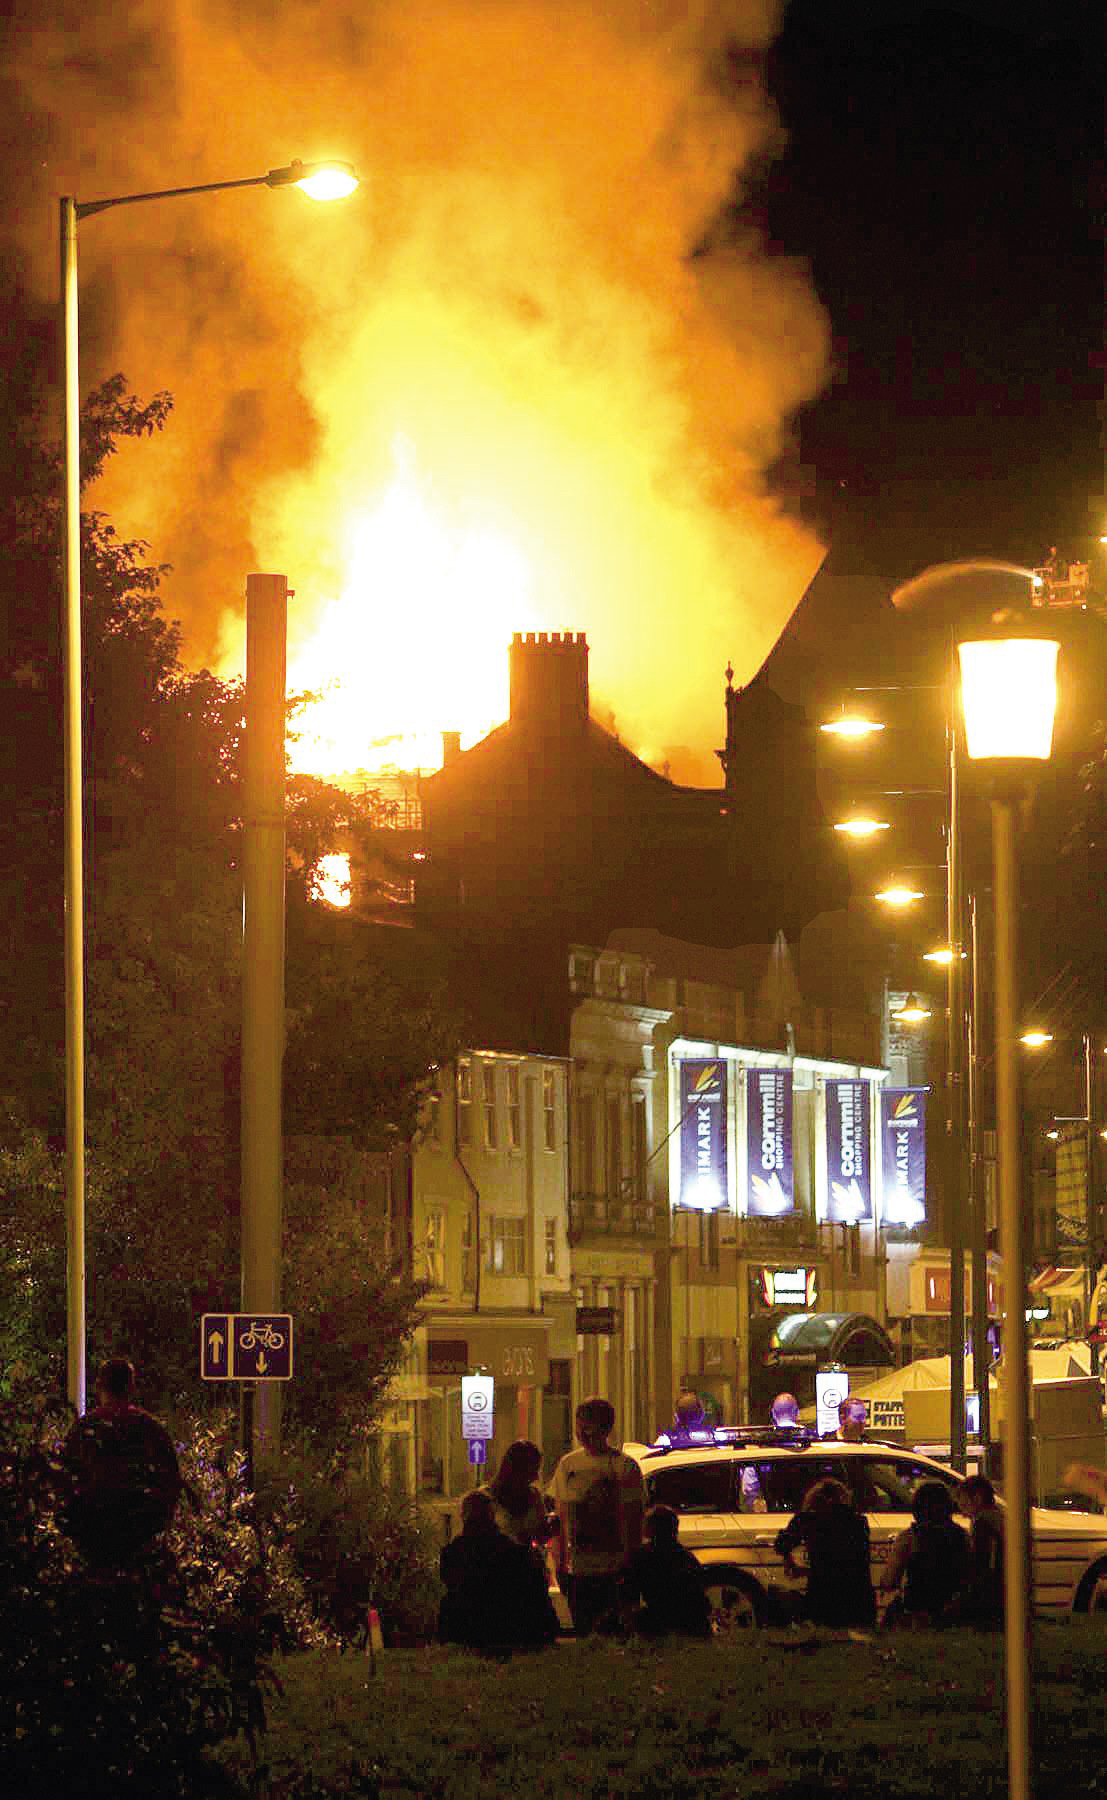 People watch the fire at the King 's Hotel, in Darlington, on 15 August, 2008